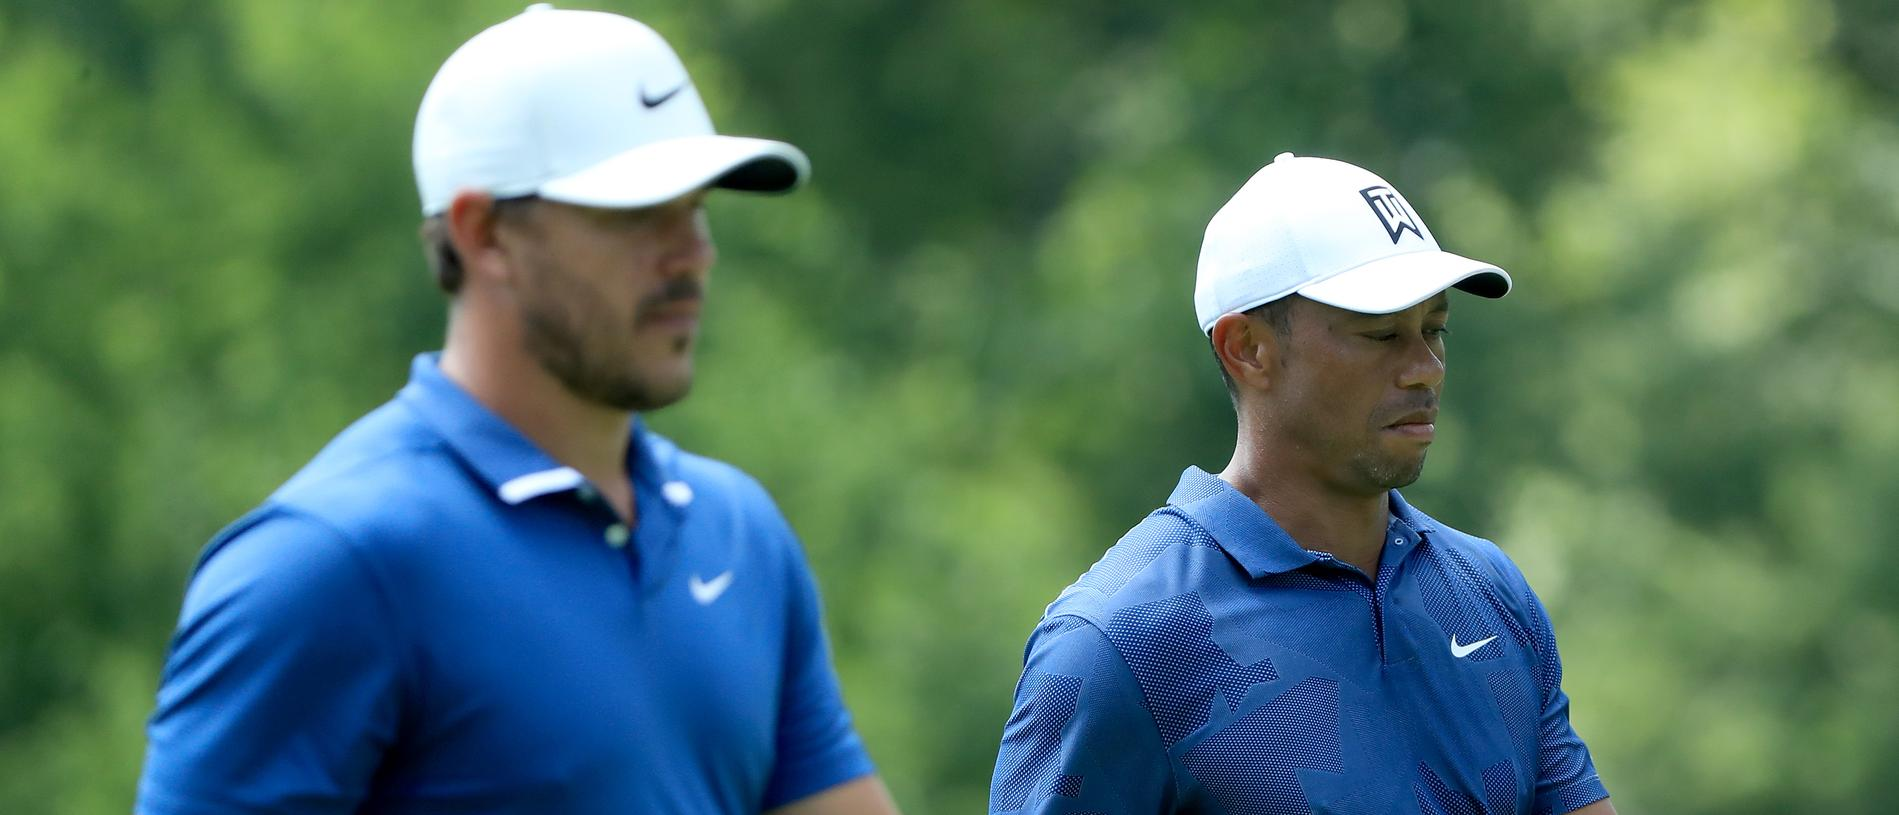 DUBLIN, OHIO - JULY 17: Tiger Woods of the United States and Brooks Koepka of the United States walk during the second round of The Memorial Tournament on July 17, 2020 at Muirfield Village Golf Club in Dublin, Ohio. (Photo by Sam Greenwood/Getty Images)